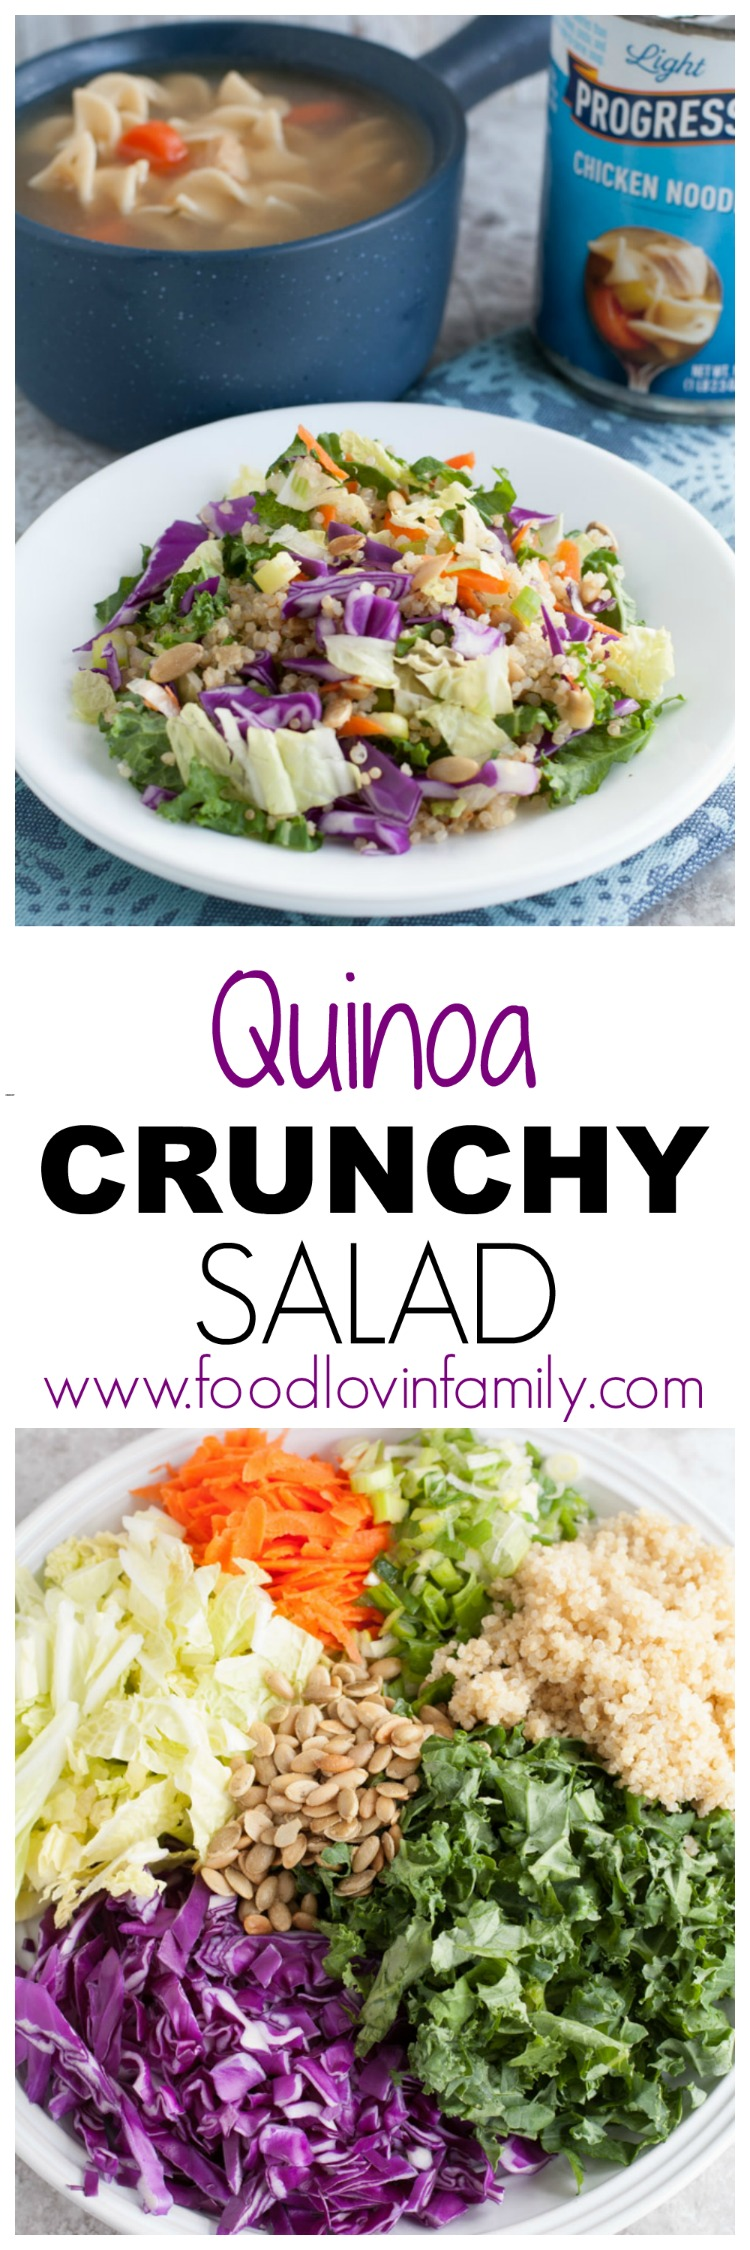 Salad with lettuce and quinoa on a plate.